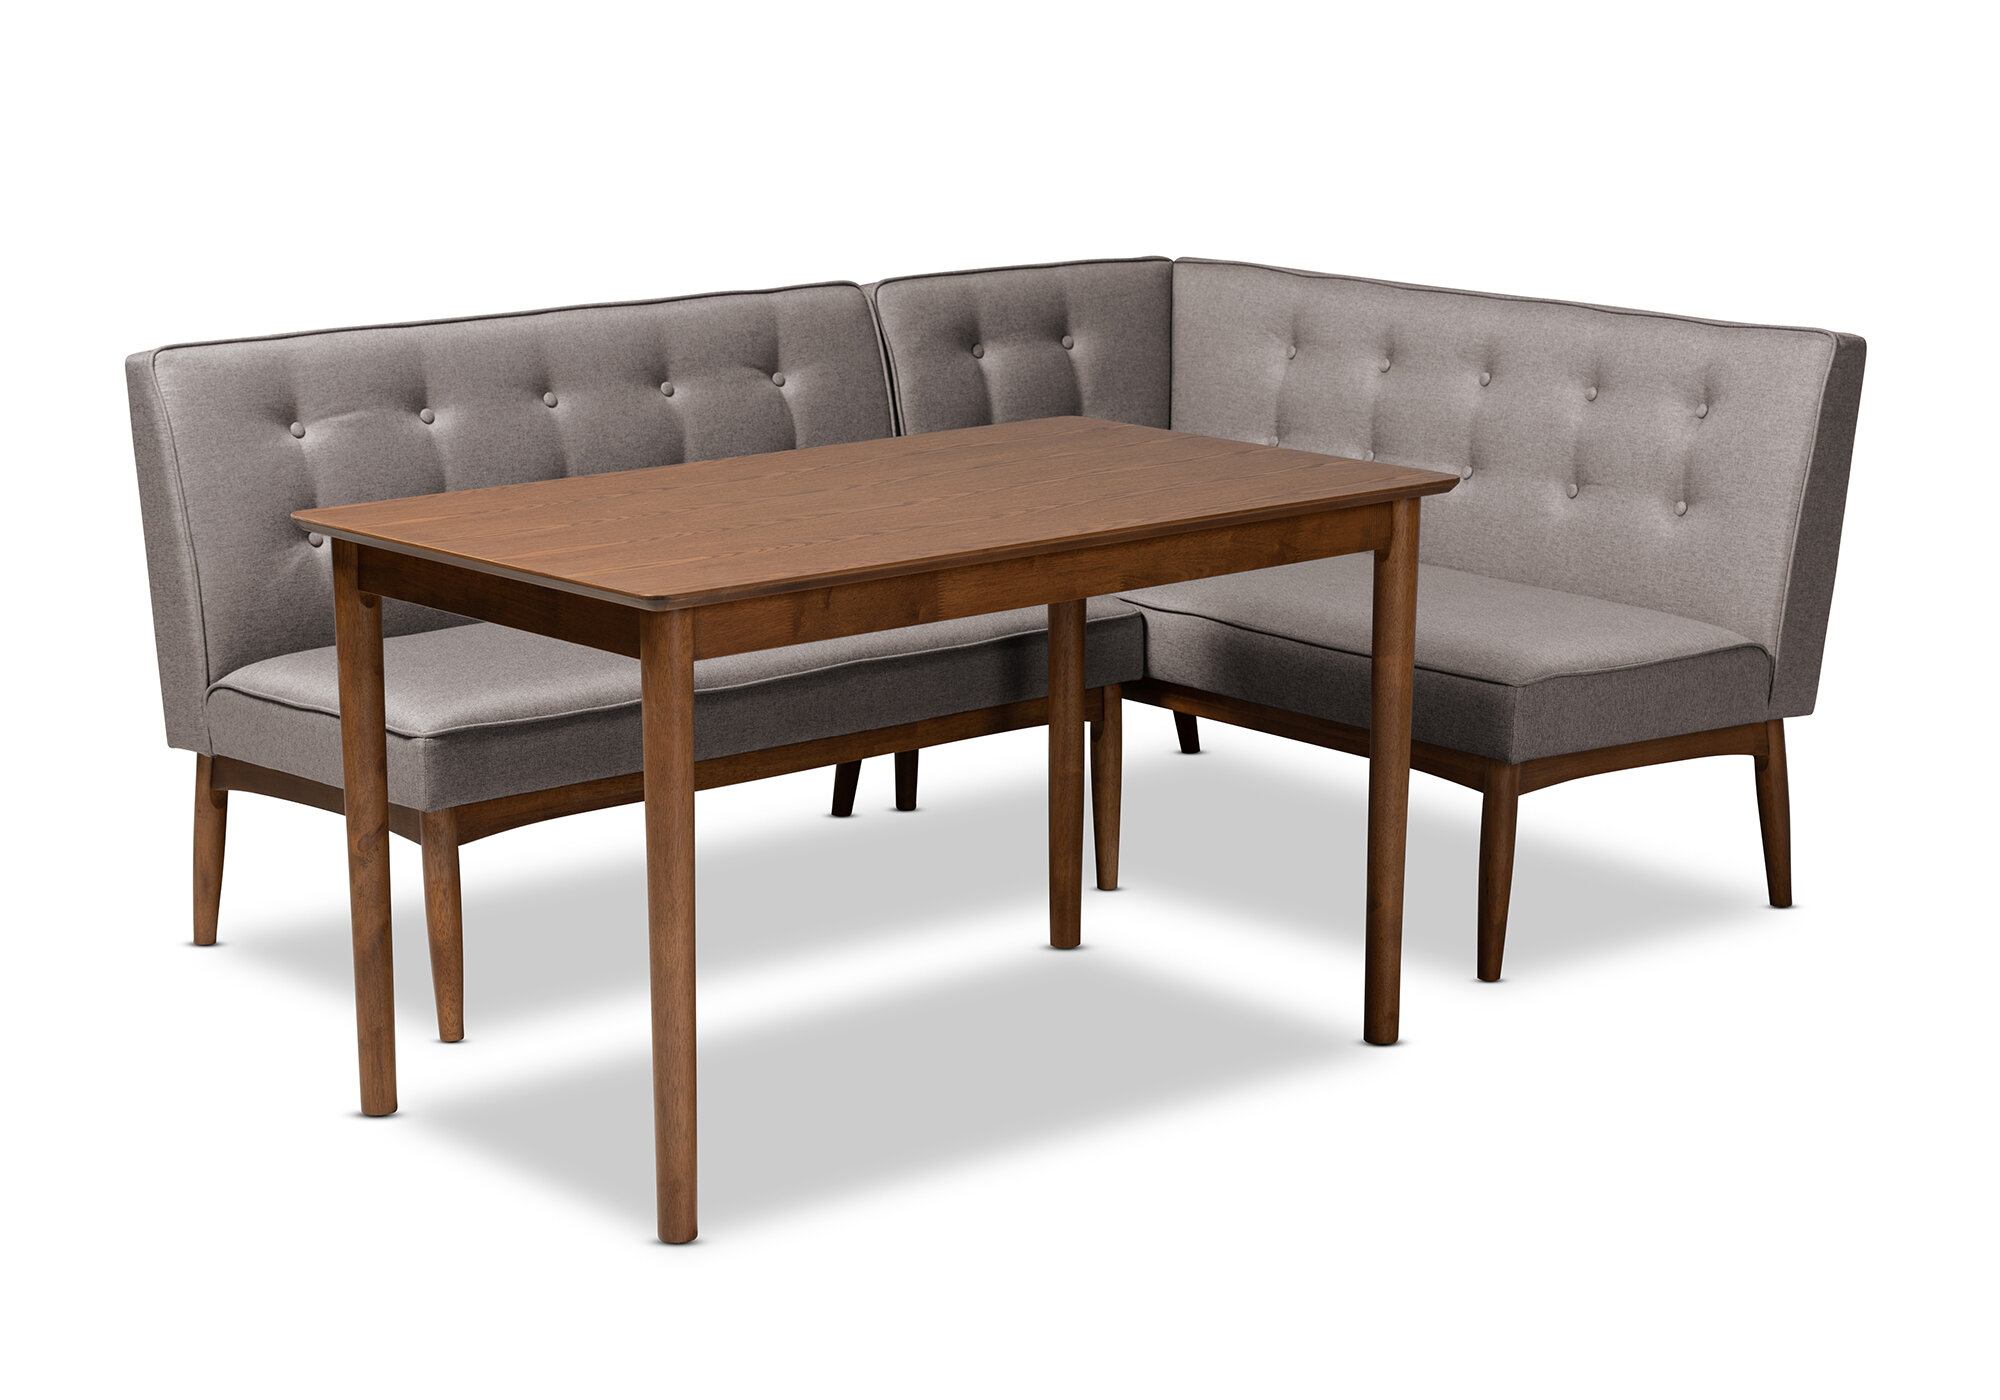 Bopp Mid Century Modern Upholstered 3 Piece Breakfast Nook Dining Set Intended For 2018 Liles 5 Piece Breakfast Nook Dining Sets (View 3 of 20)